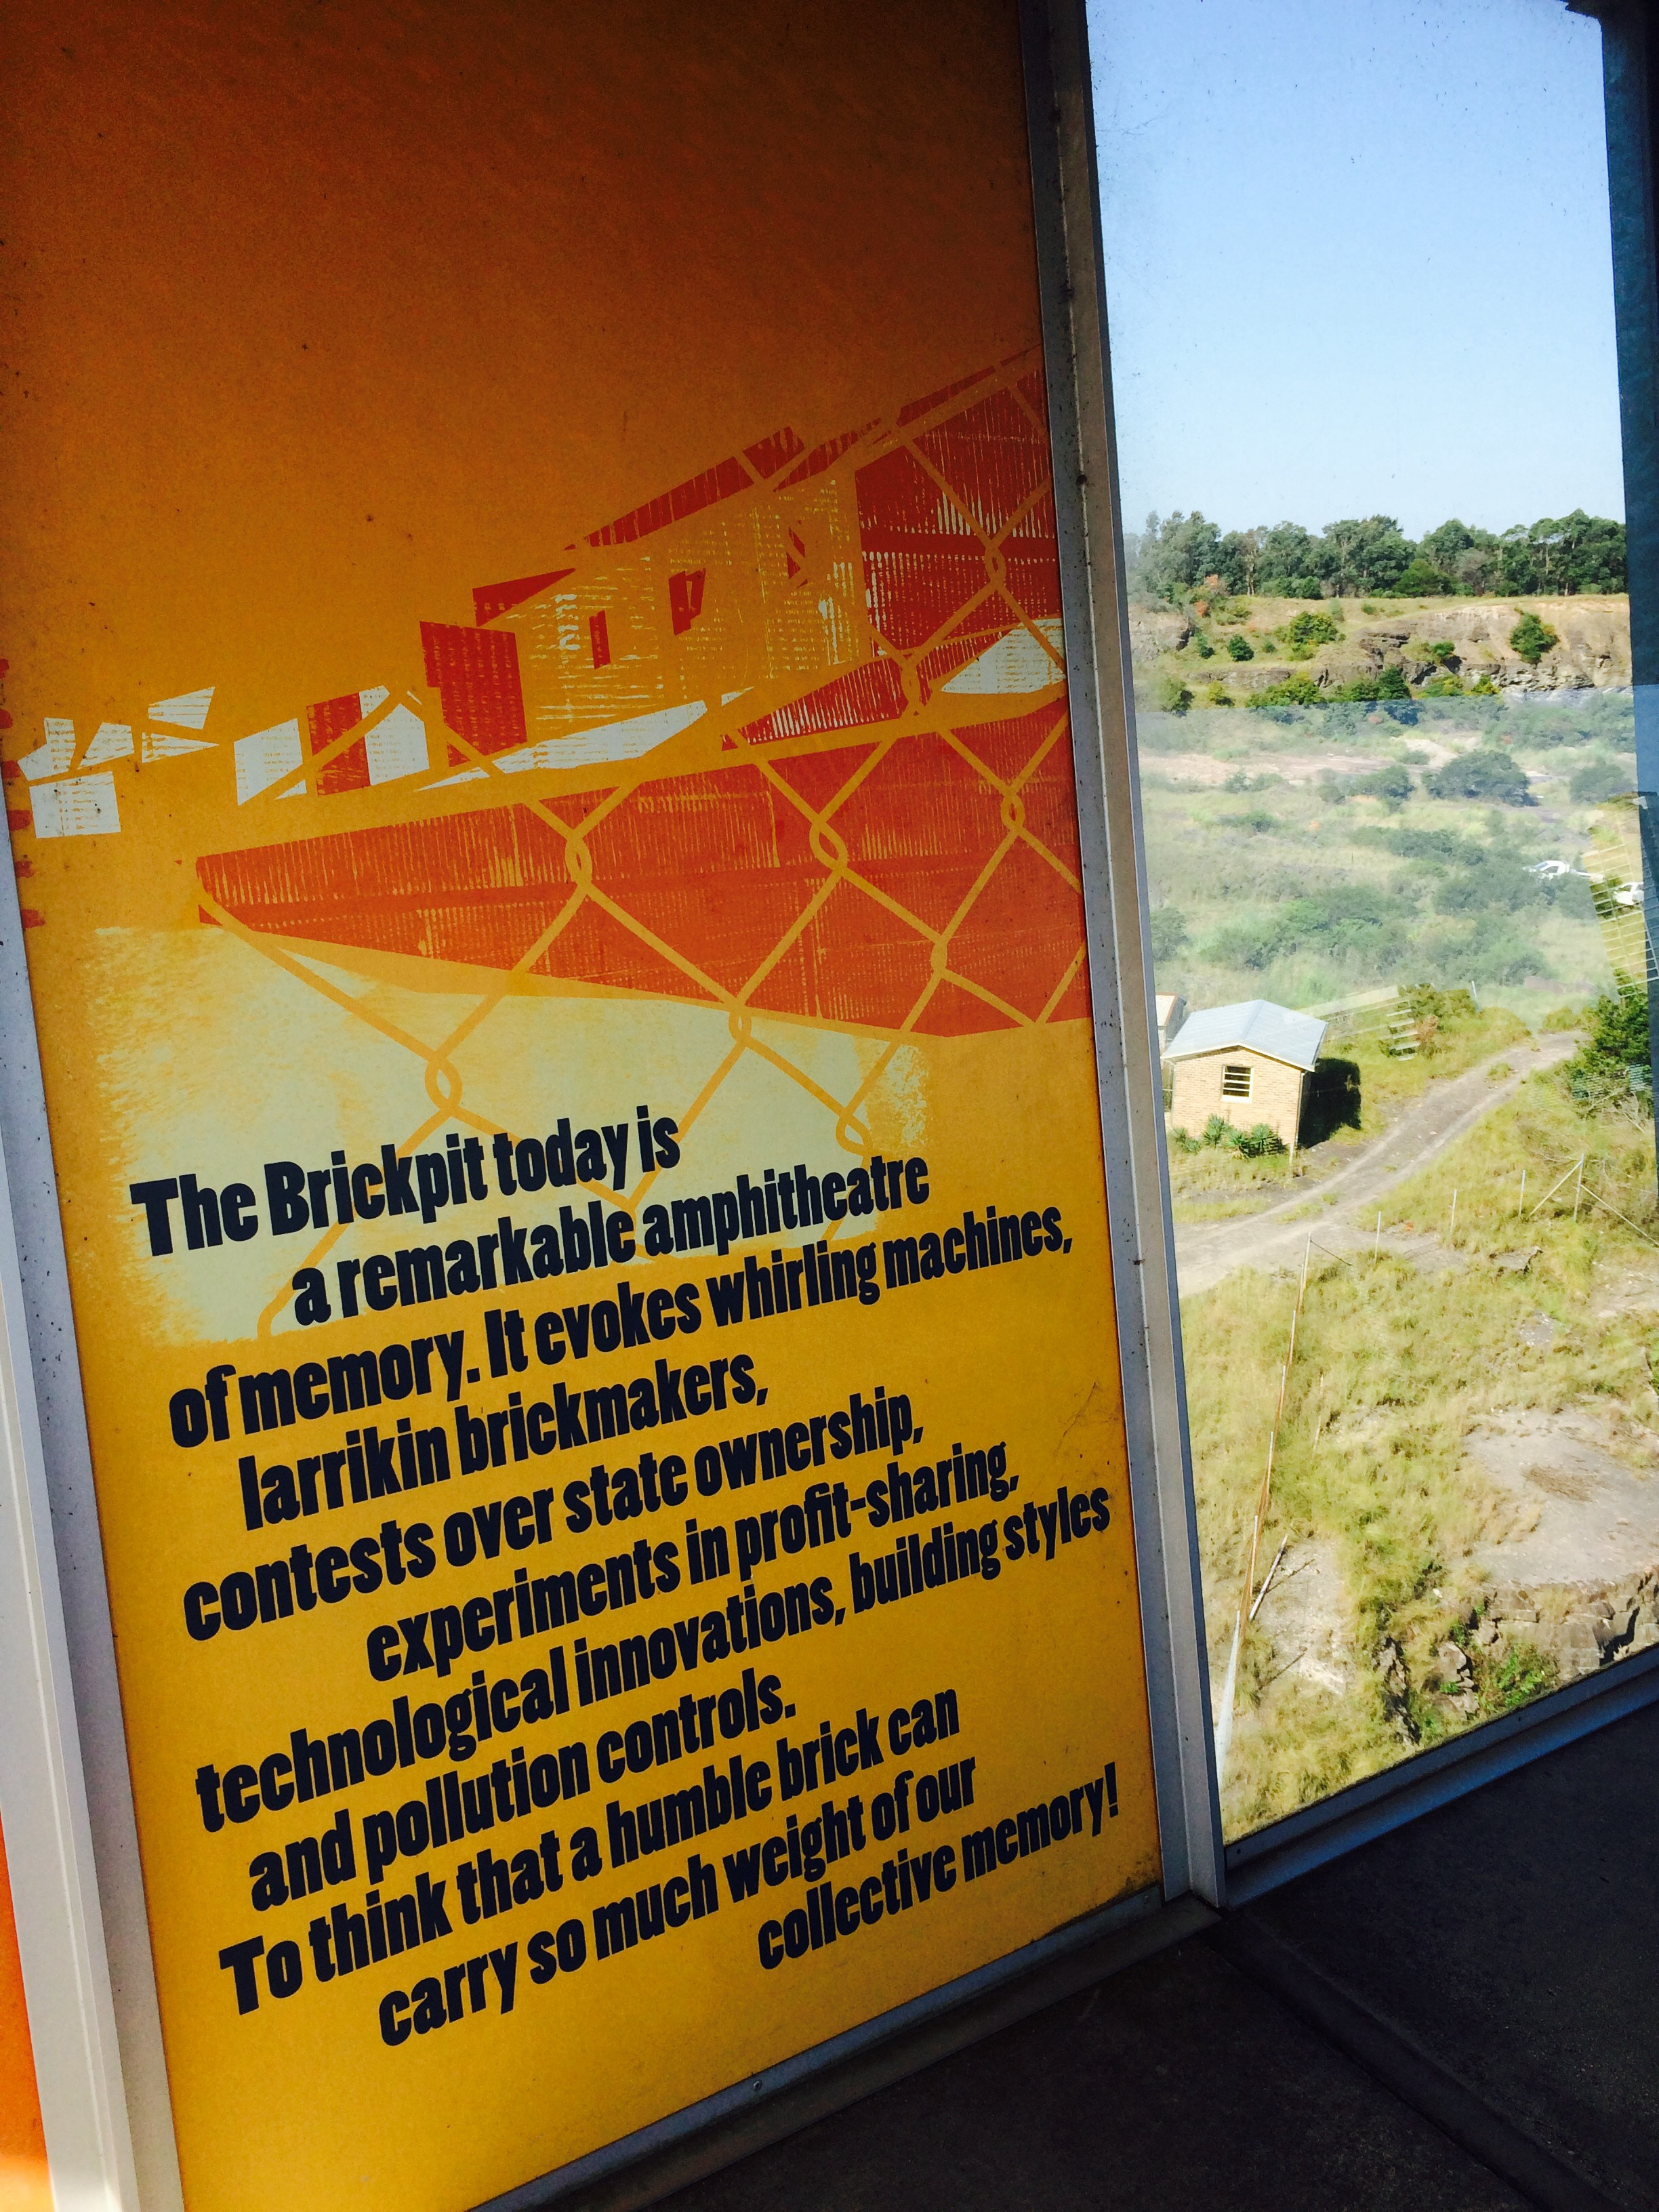 The Information Walls Encircling Ring Give A Concise Summary Of History State Brickworks From Its Establishment In 1911